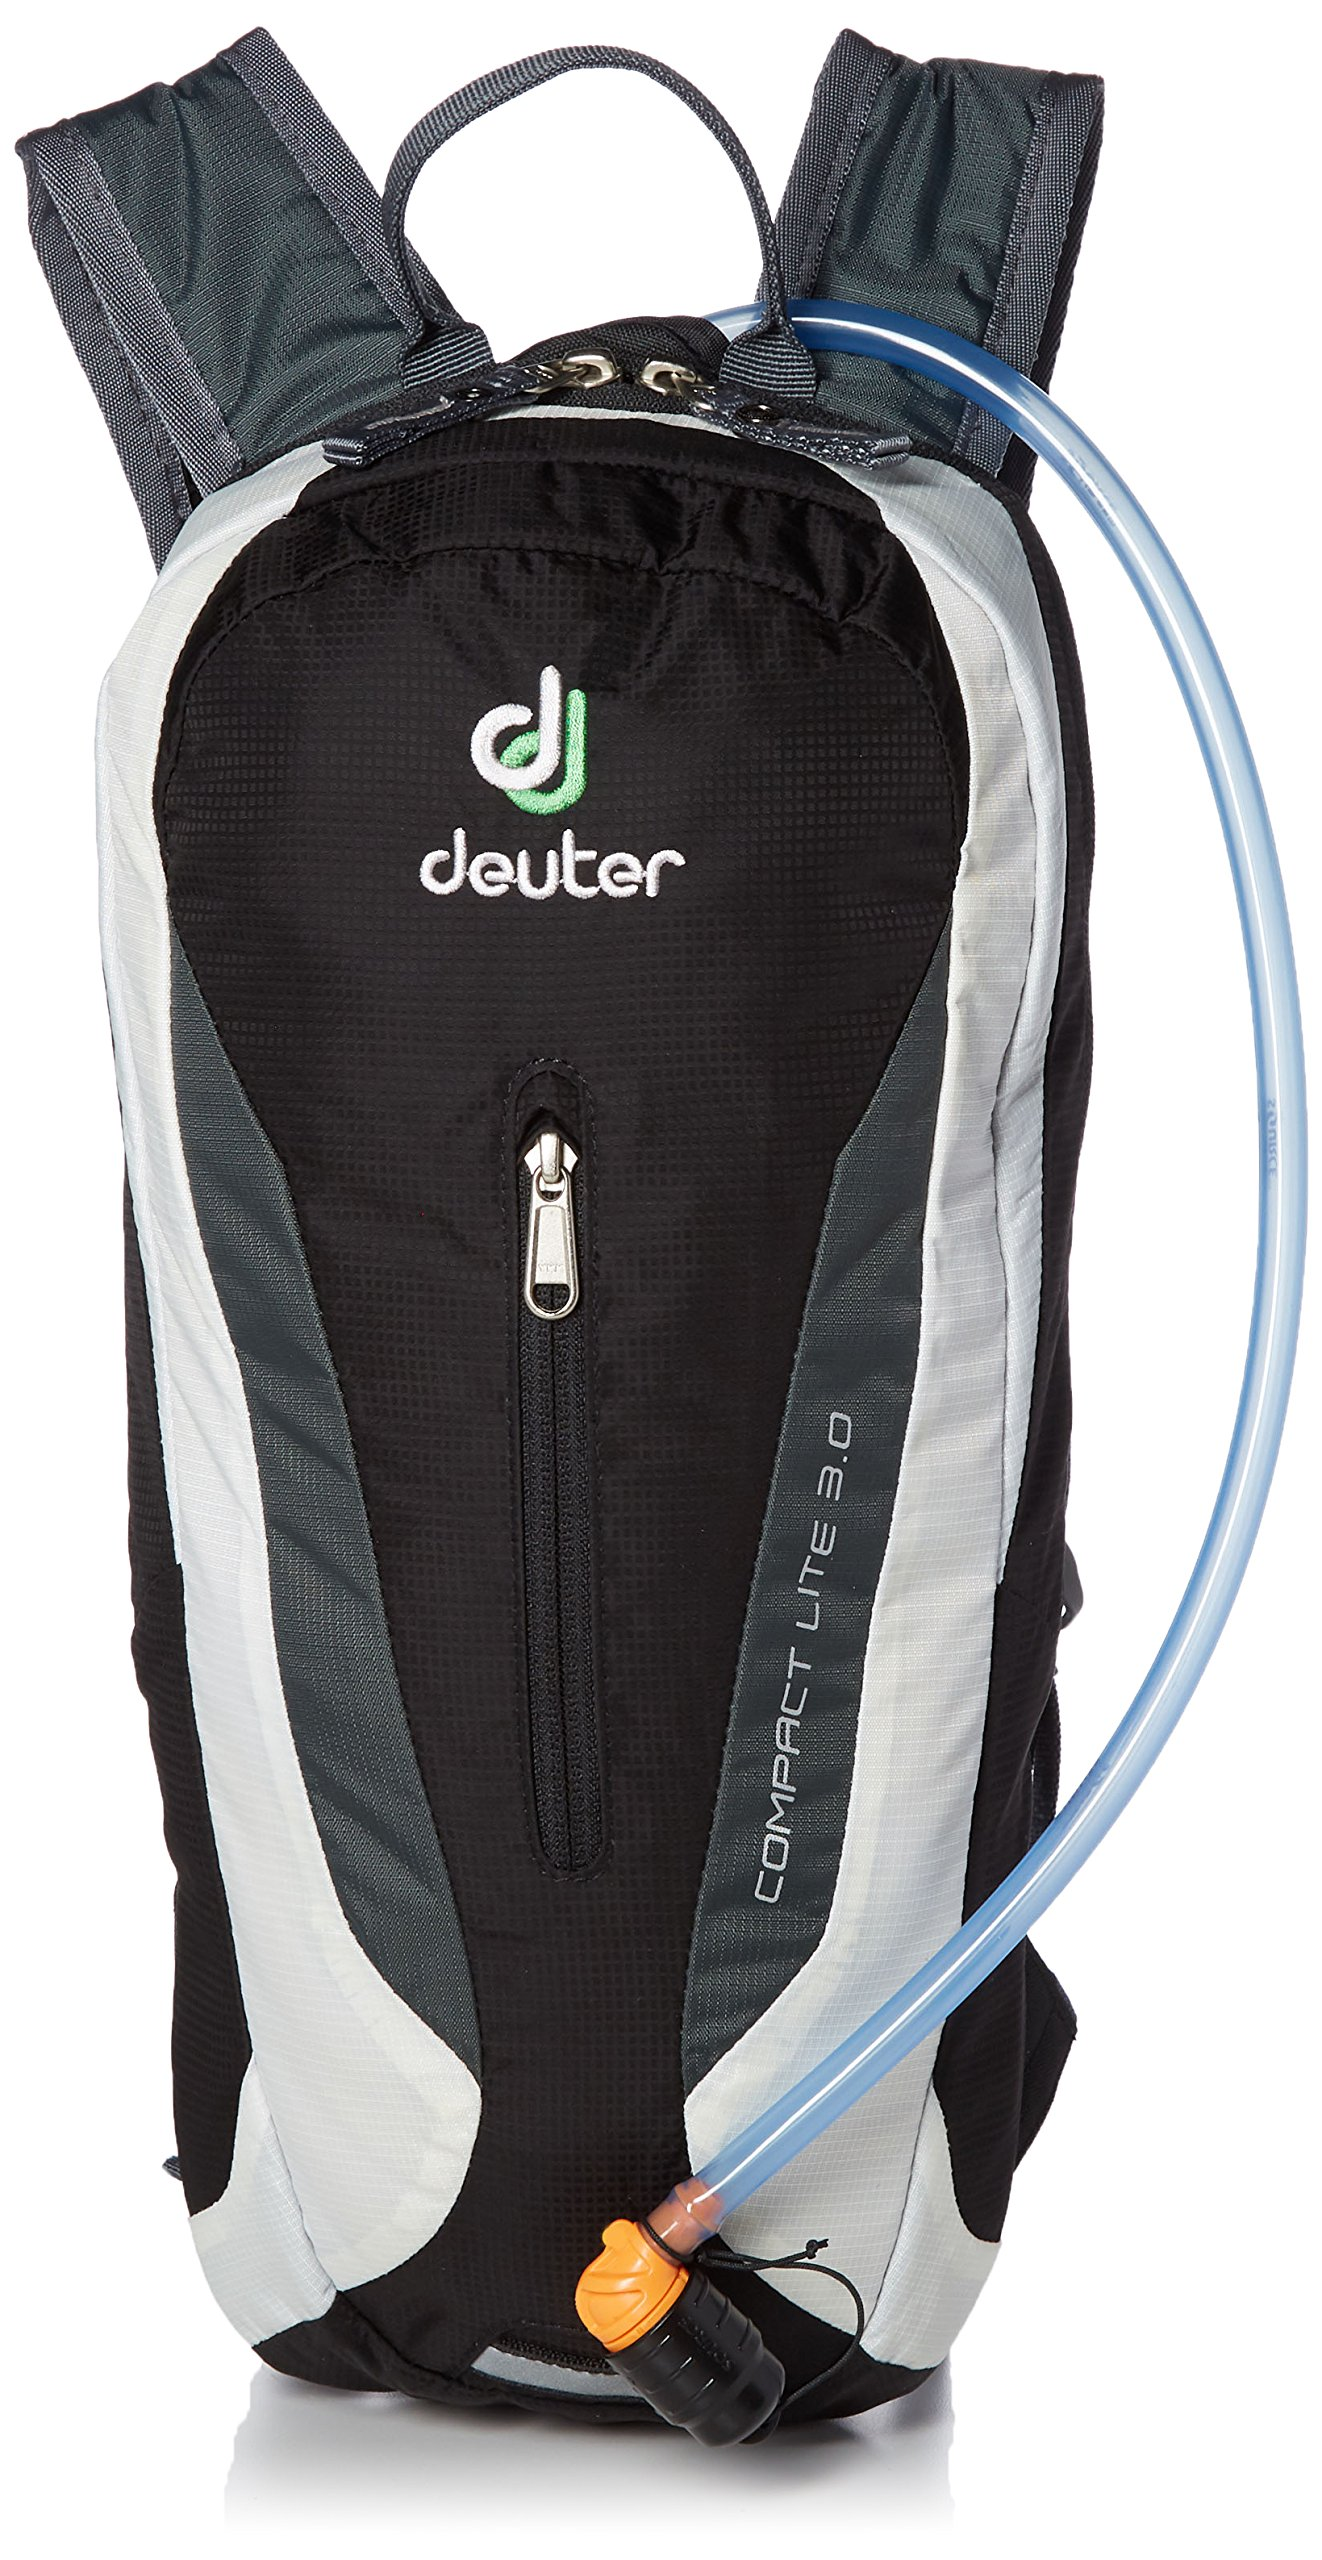 Deuter Black/White One Size 420011671300 Compact Lite with 3 Liter Reservoir-Perfect for Hiking, Biking, Hunting, Offroad and Motorcycling